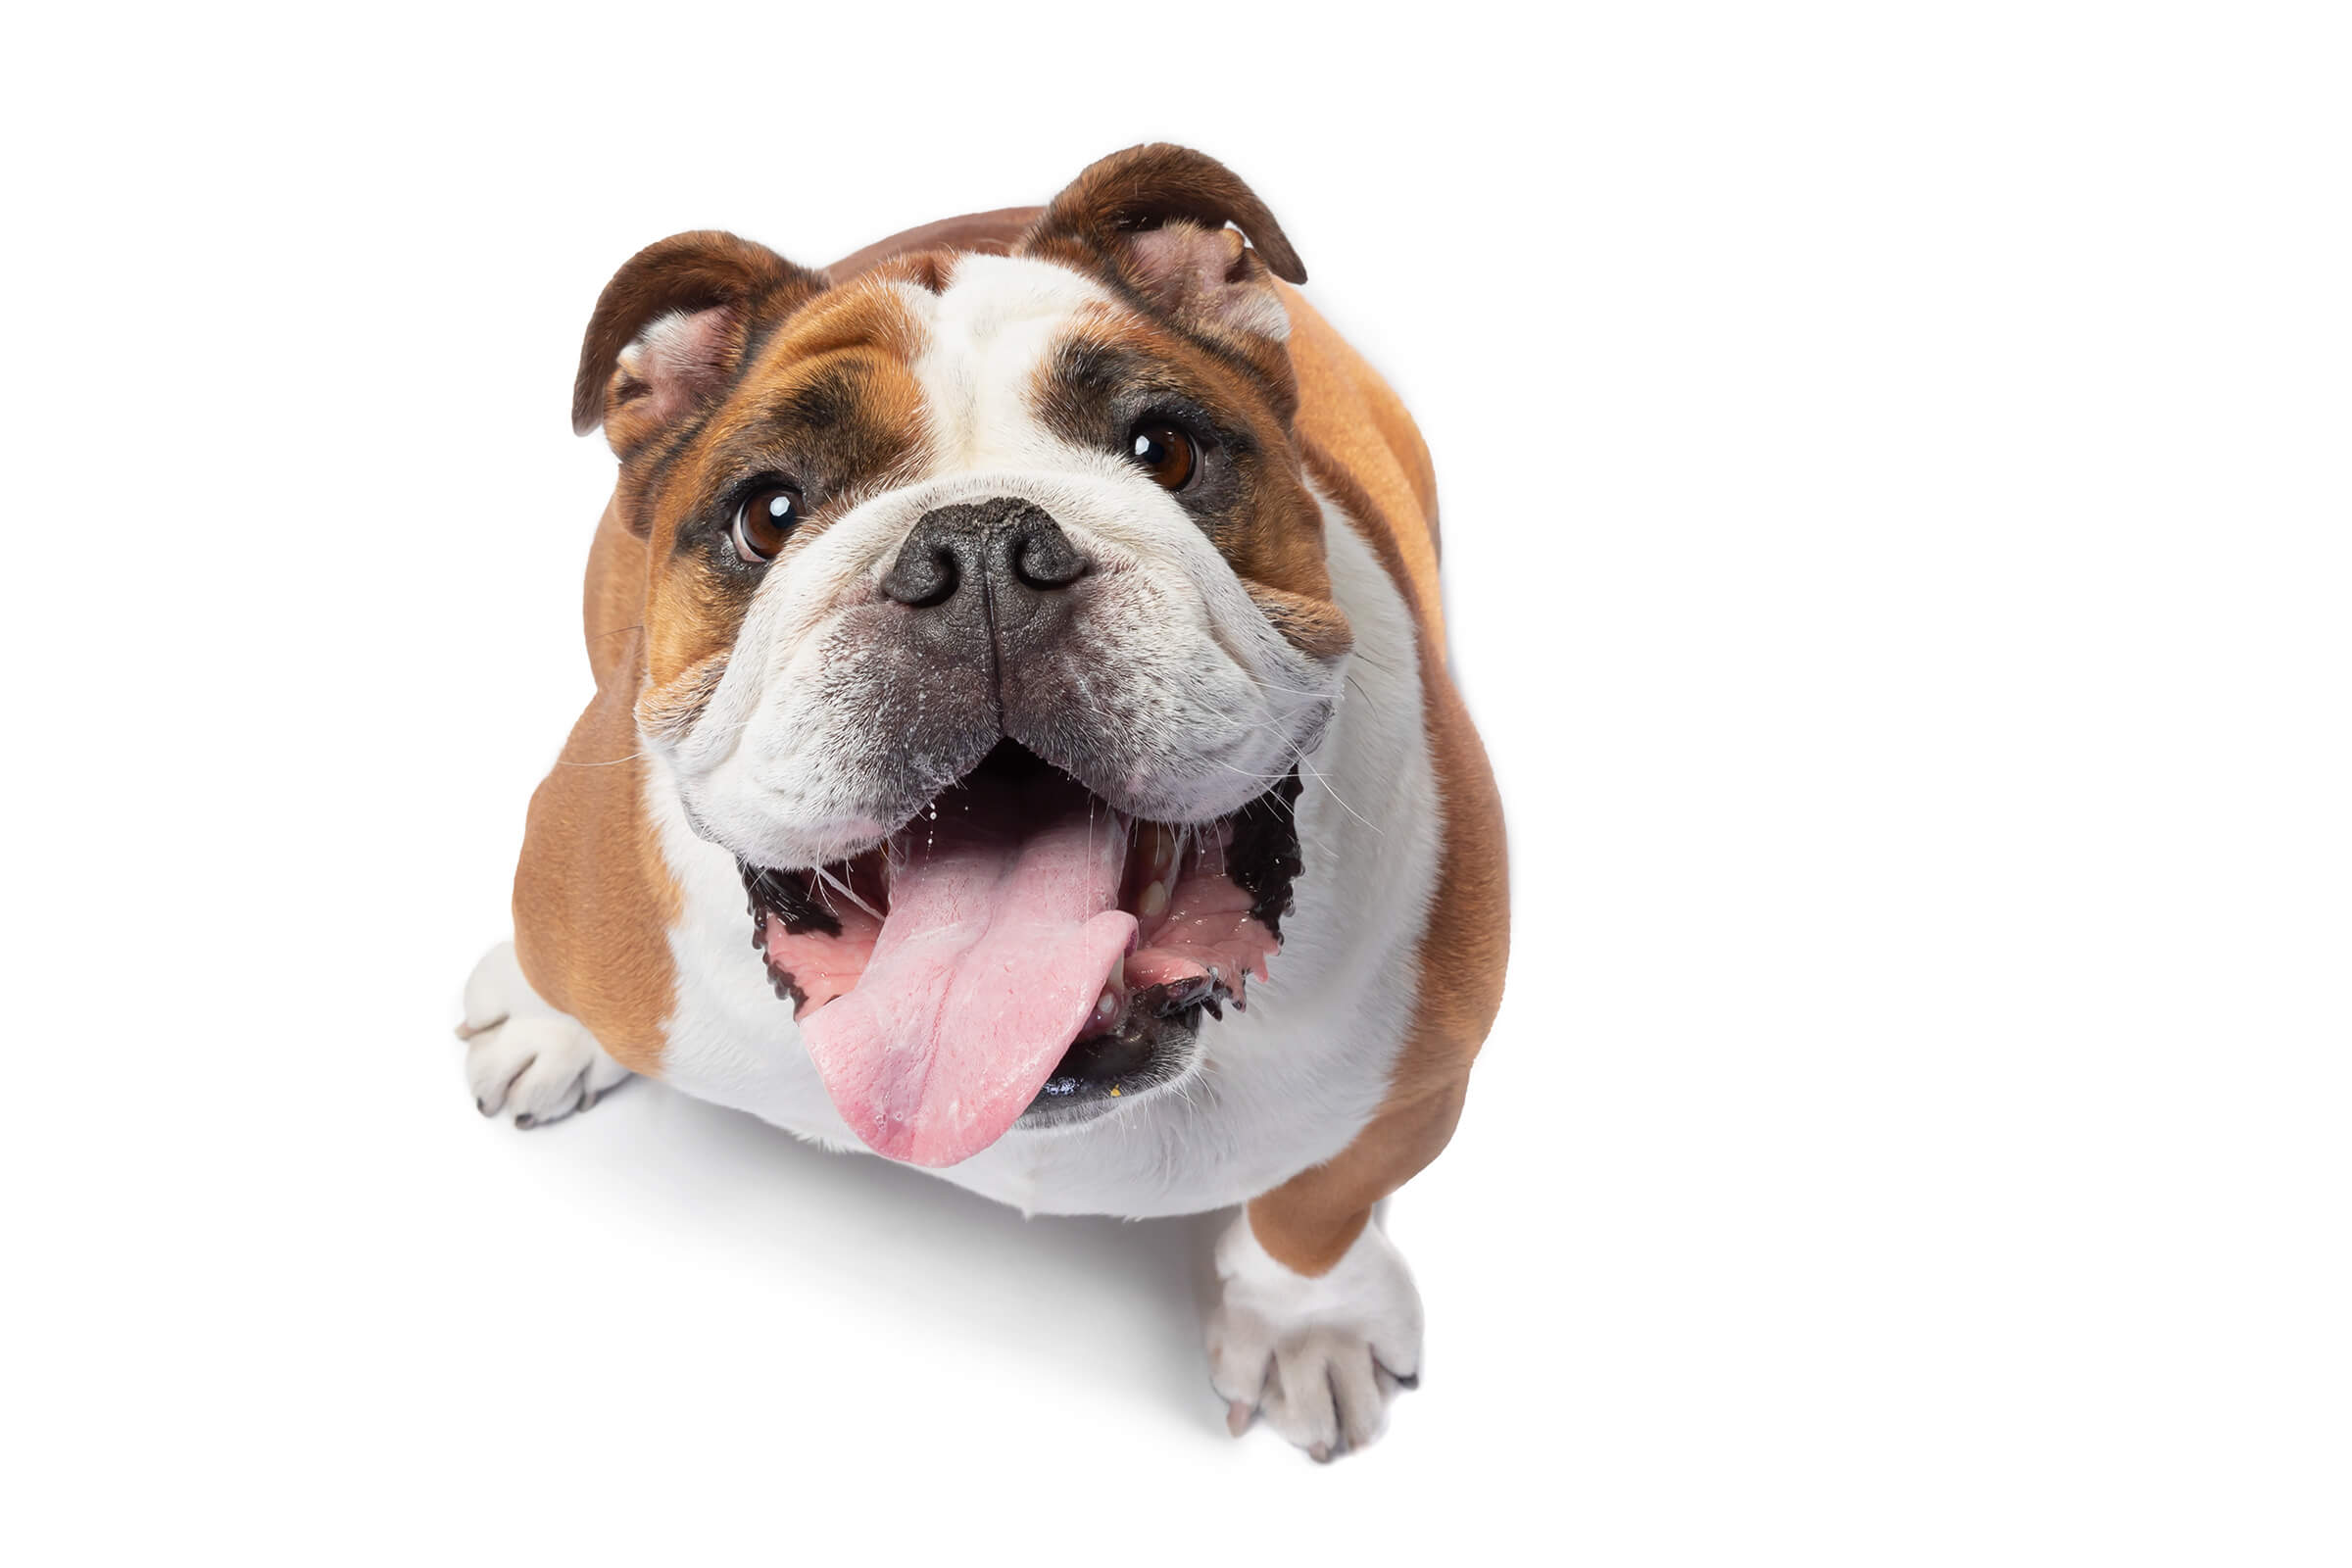 bulldog with big tongue during commercial photography session